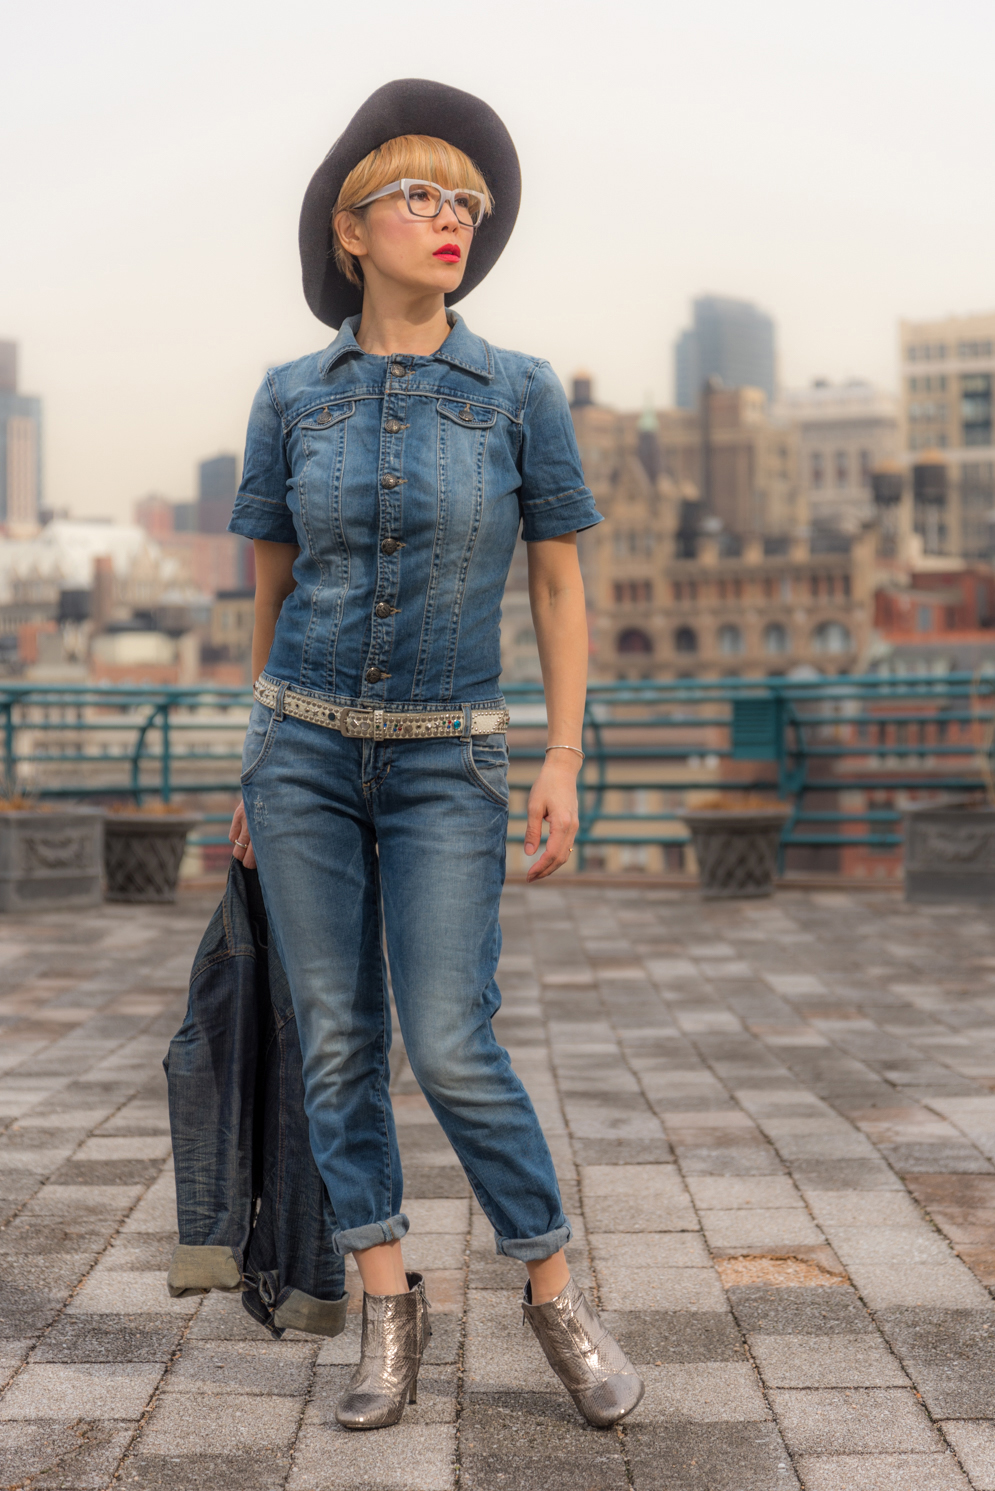 ROCK MAMA NYC LIFESTYLE BLOG - HOW TO WEAR DENIM ON DENIM